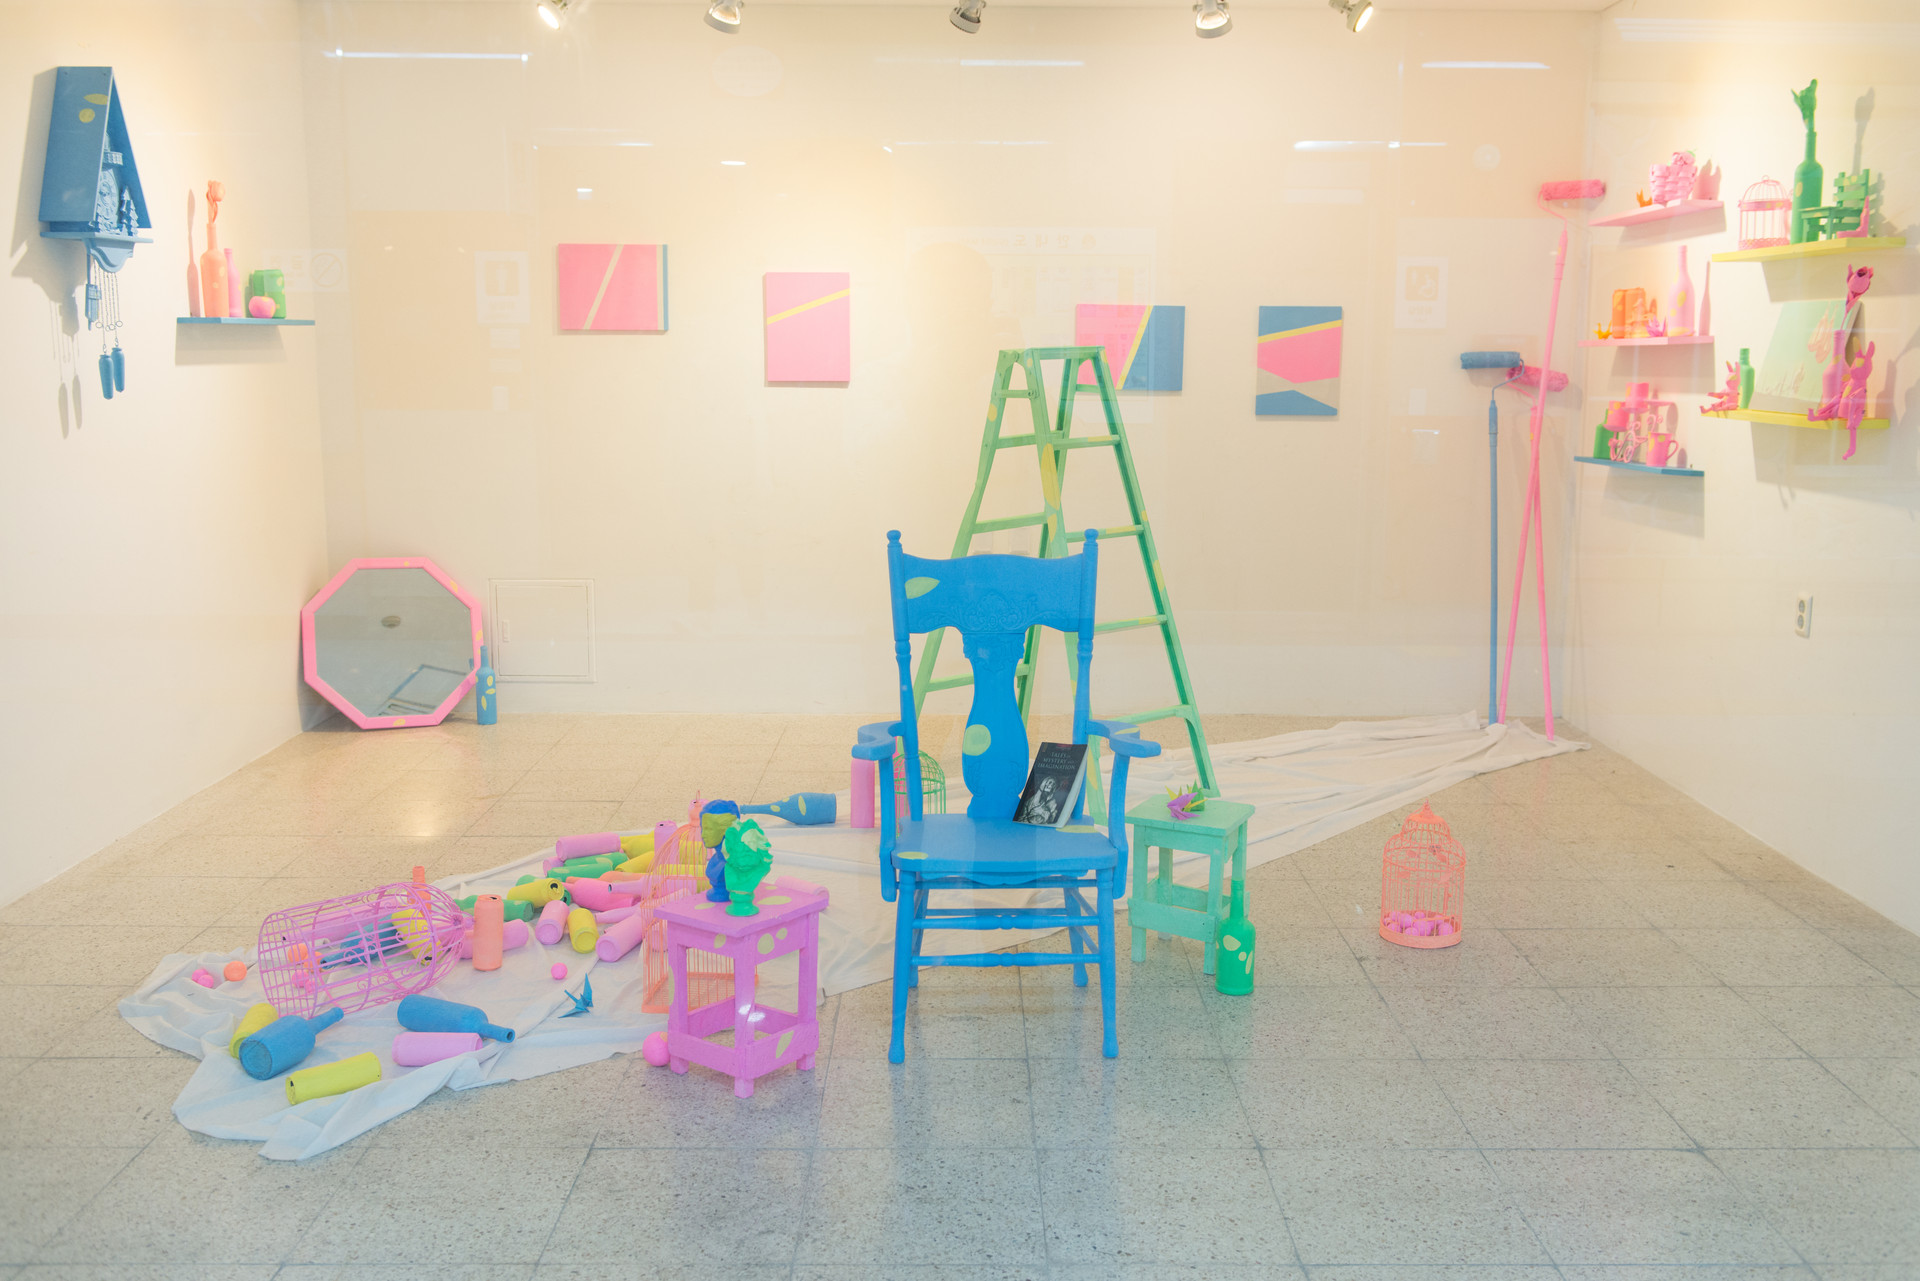 A personal history museum, Yoonkyung Kim